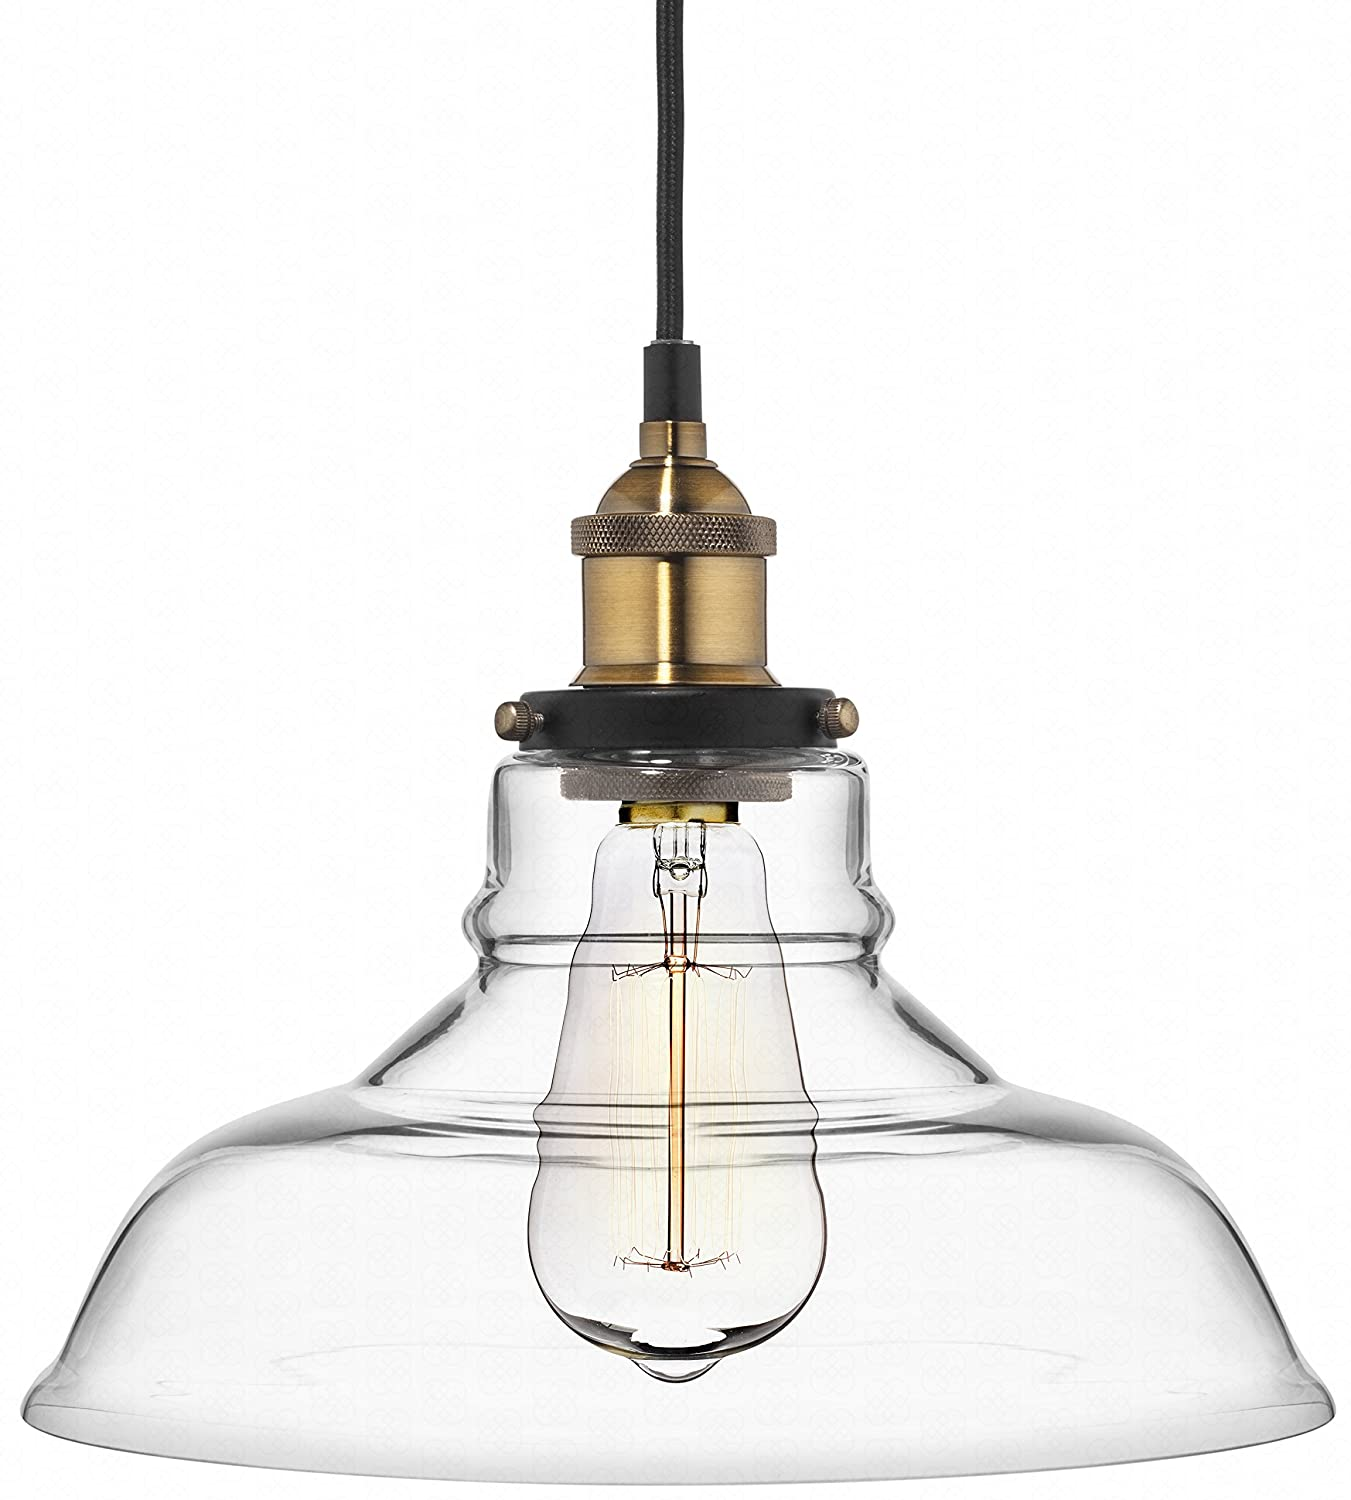 Farmhouse Clear Glass Shade Ceiling Pendant Lighting, Kitchen ...